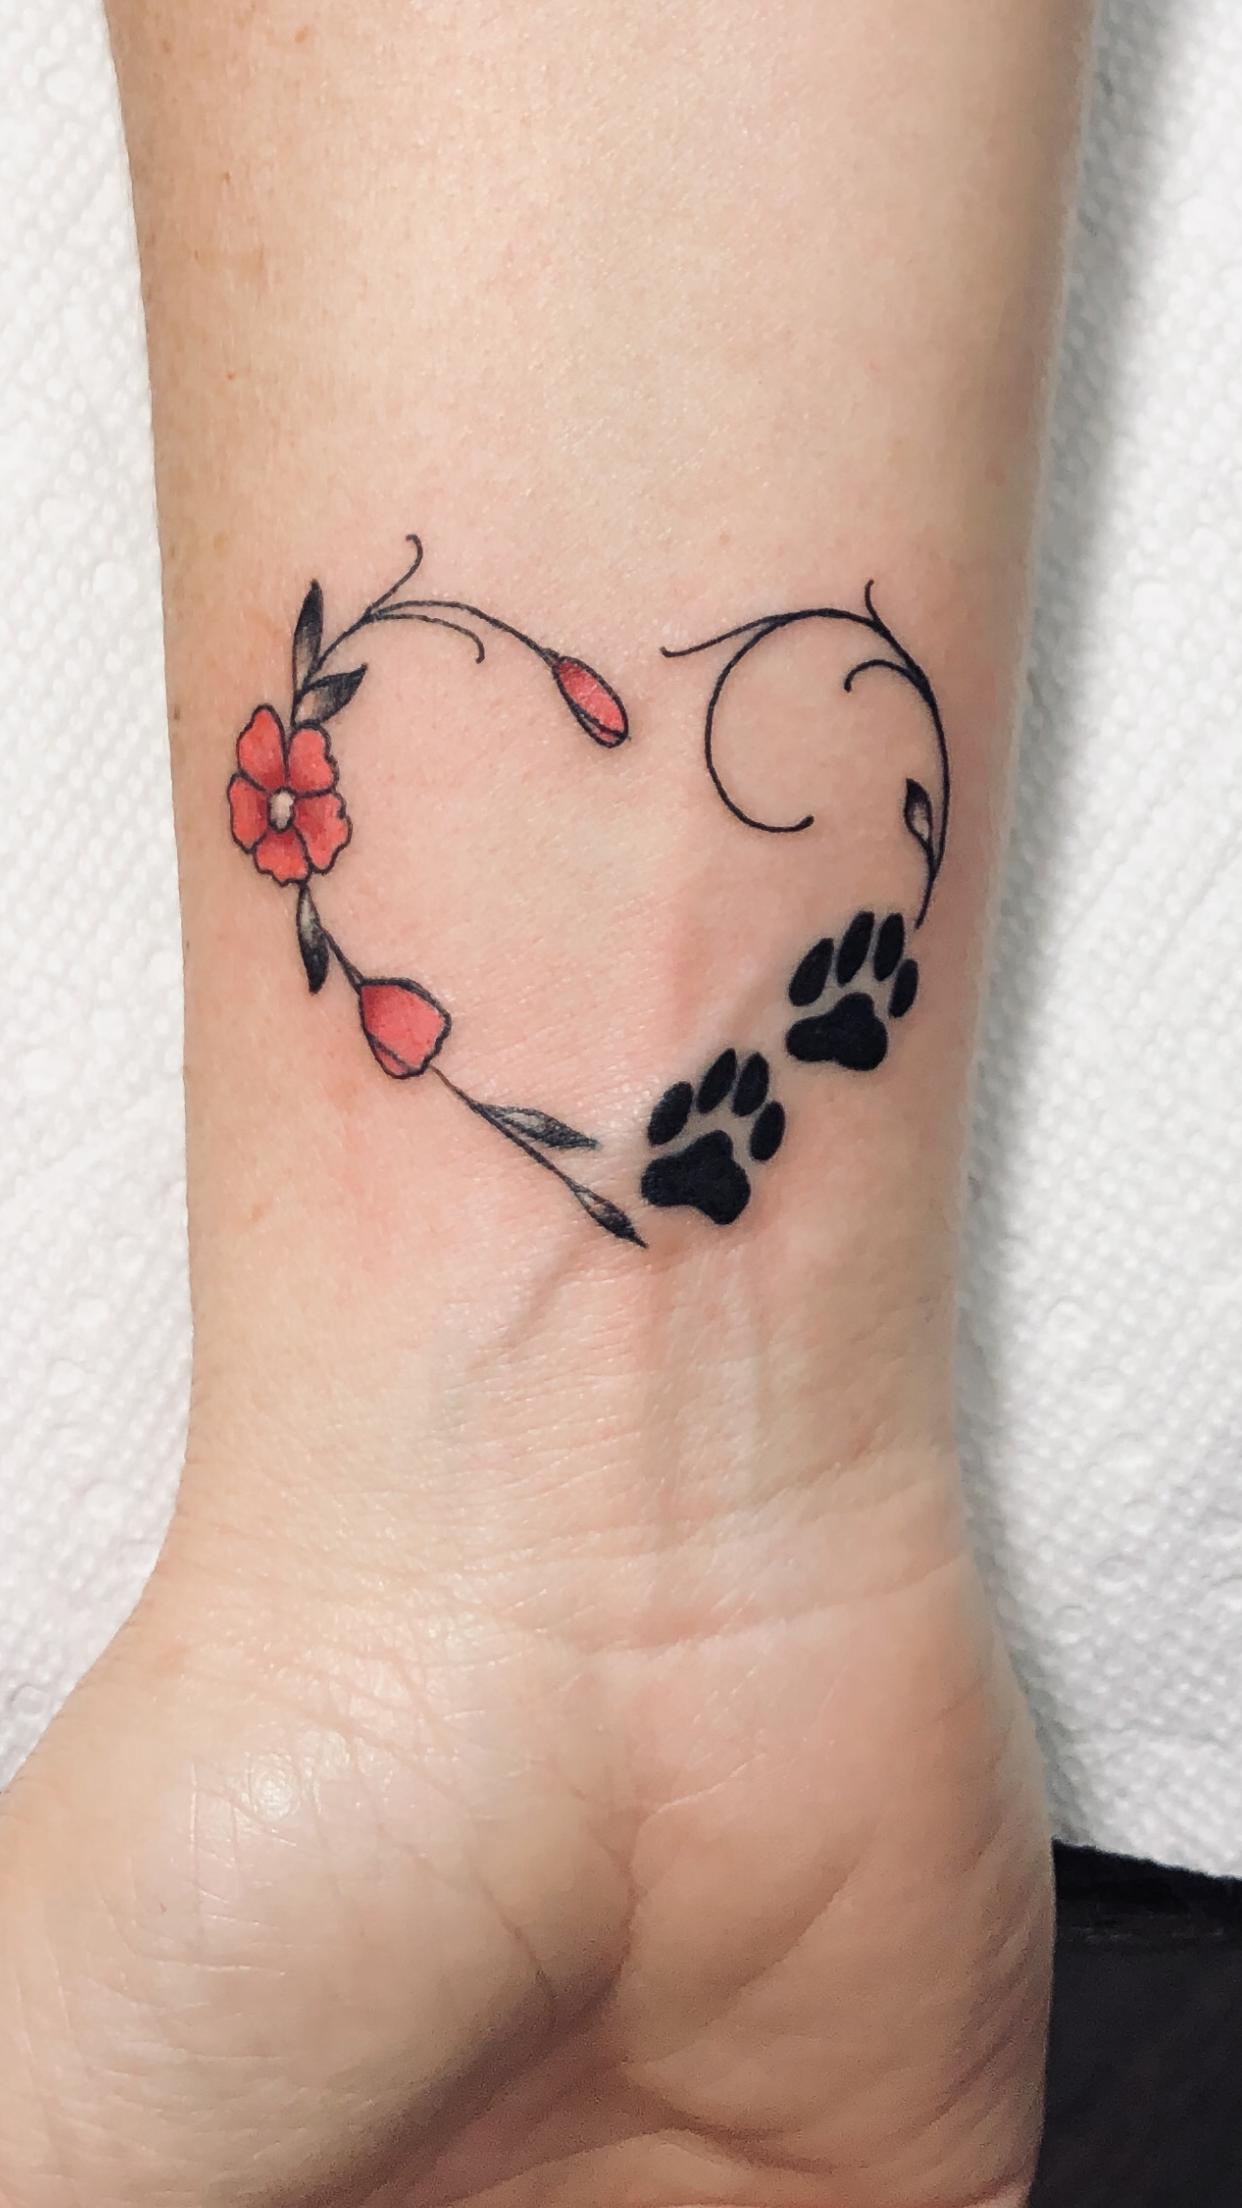 Heart with flowers and dog paw prints tattoo done by inkhouse 203